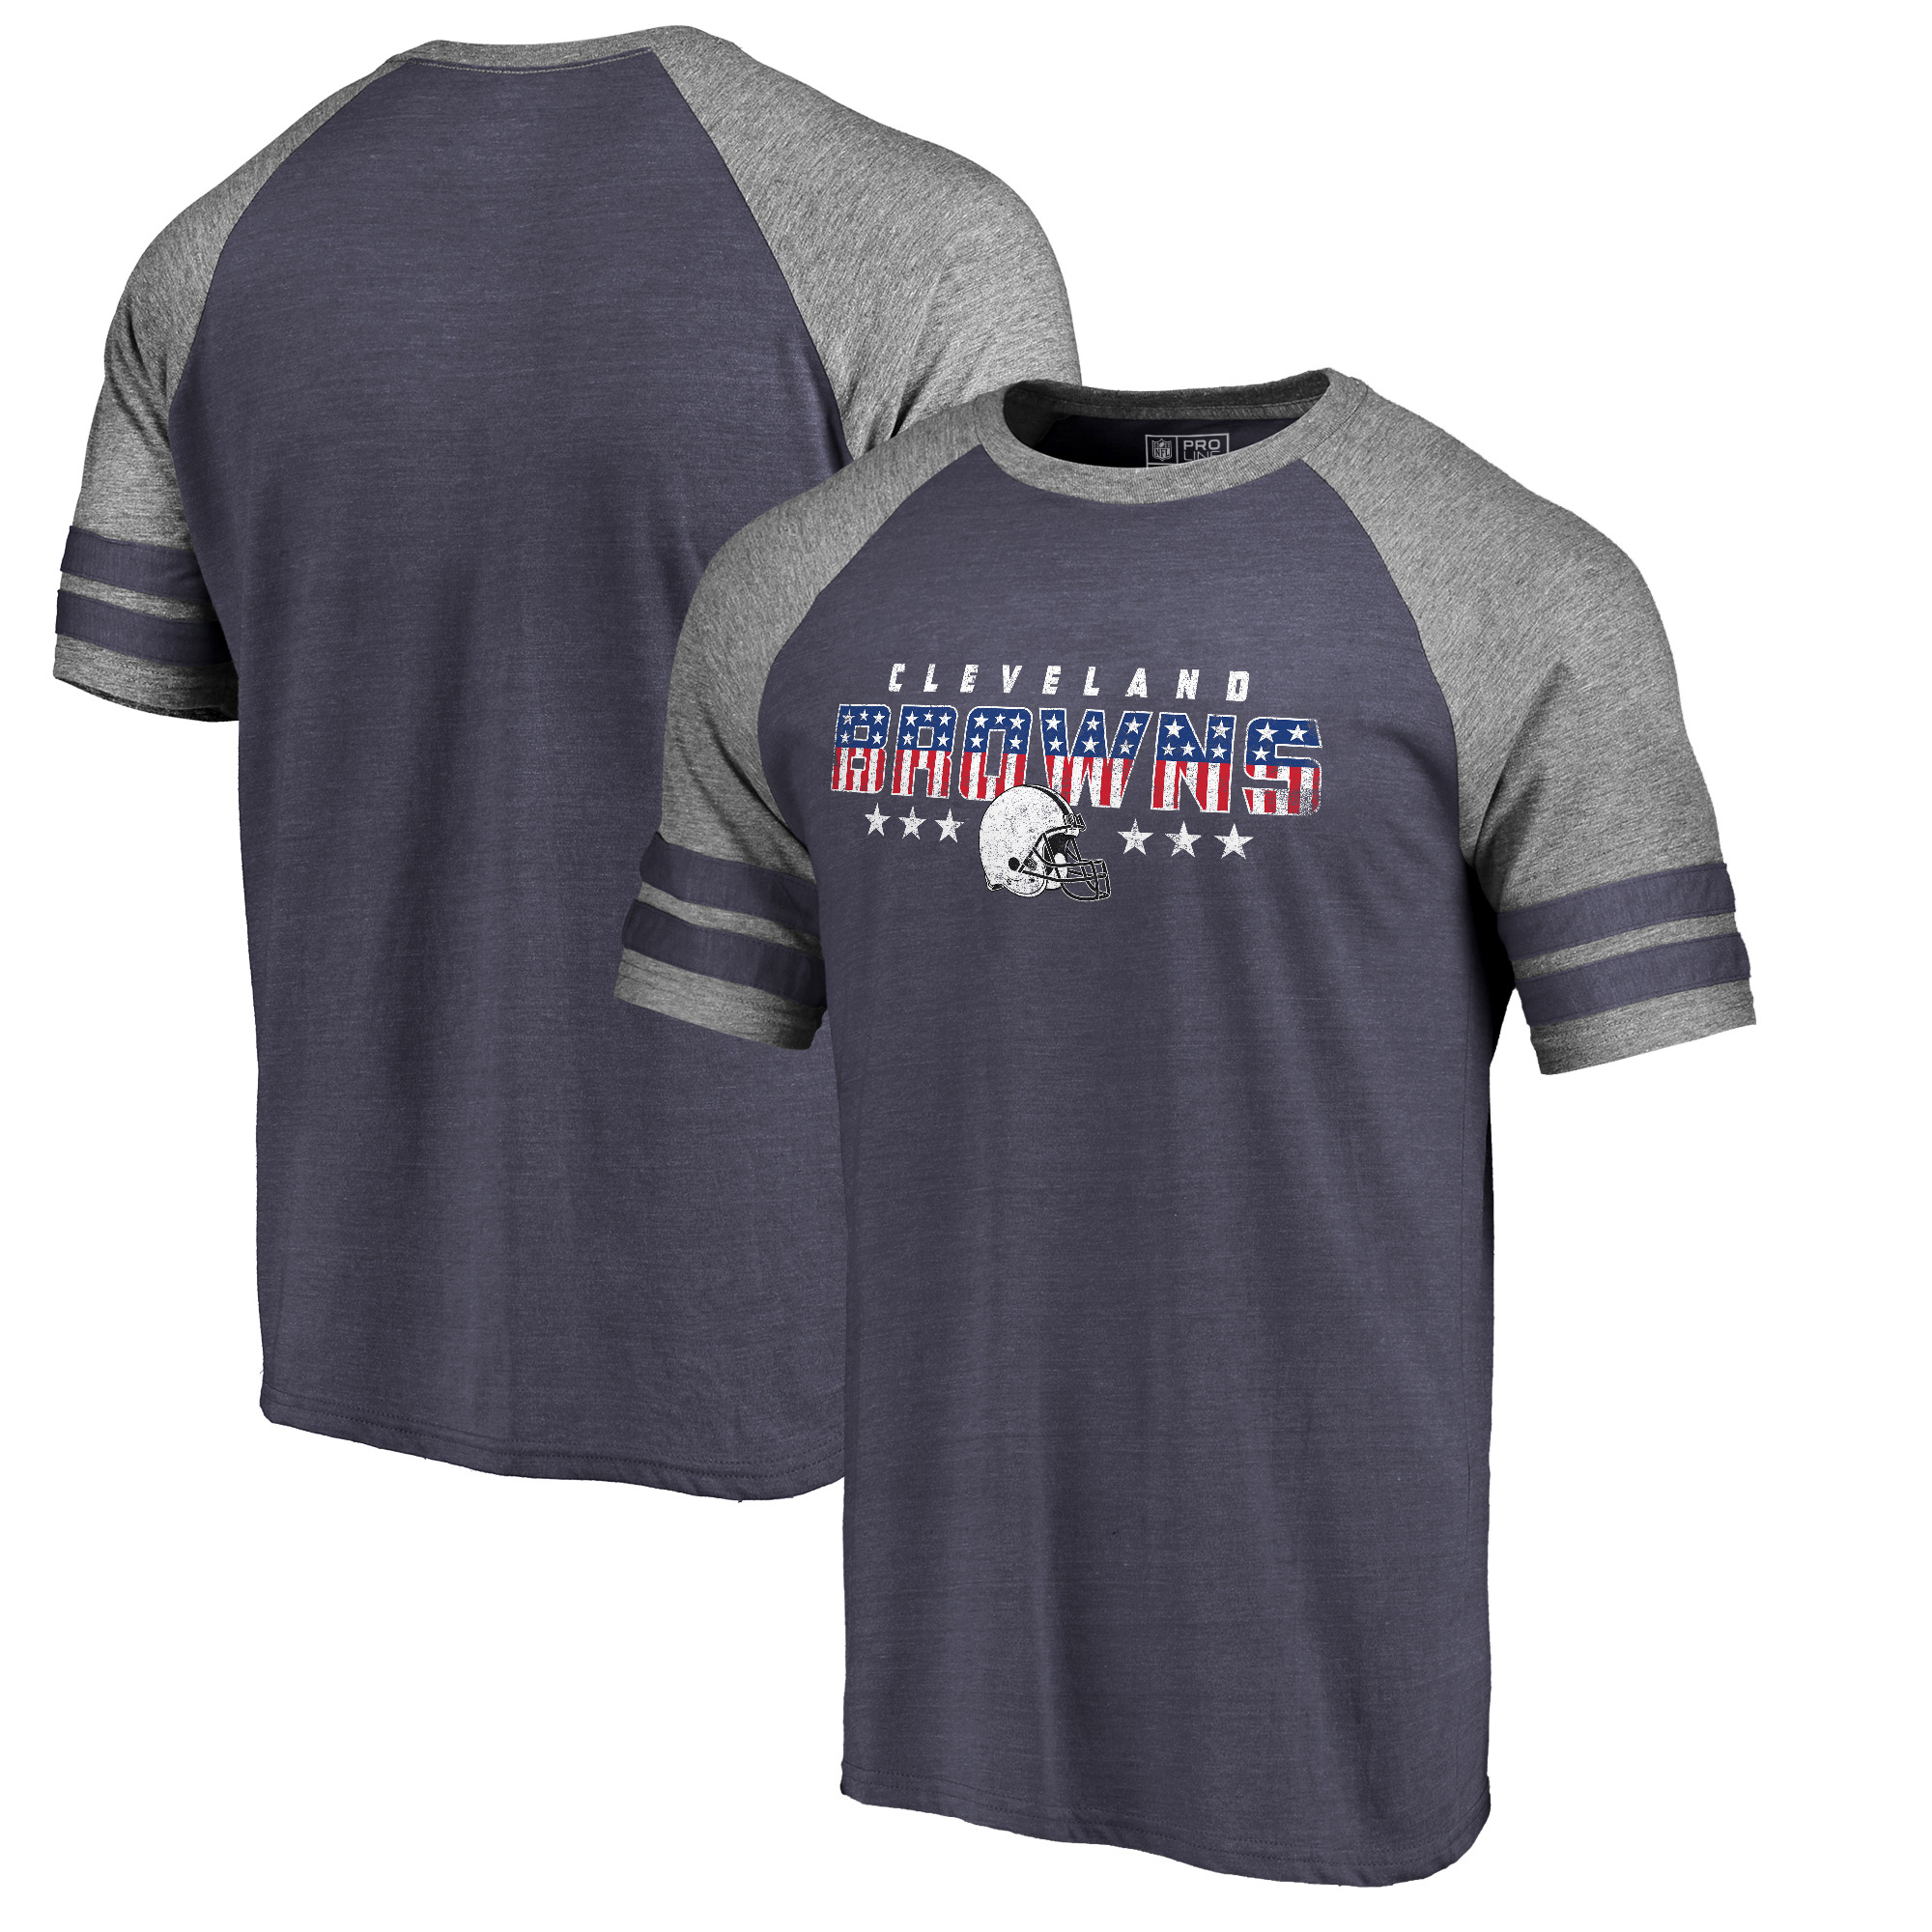 Cleveland Browns NFL Pro Line by Fanatics Branded Spangled Raglan Sleeve T-Shirt - Navy/Heathered Gray